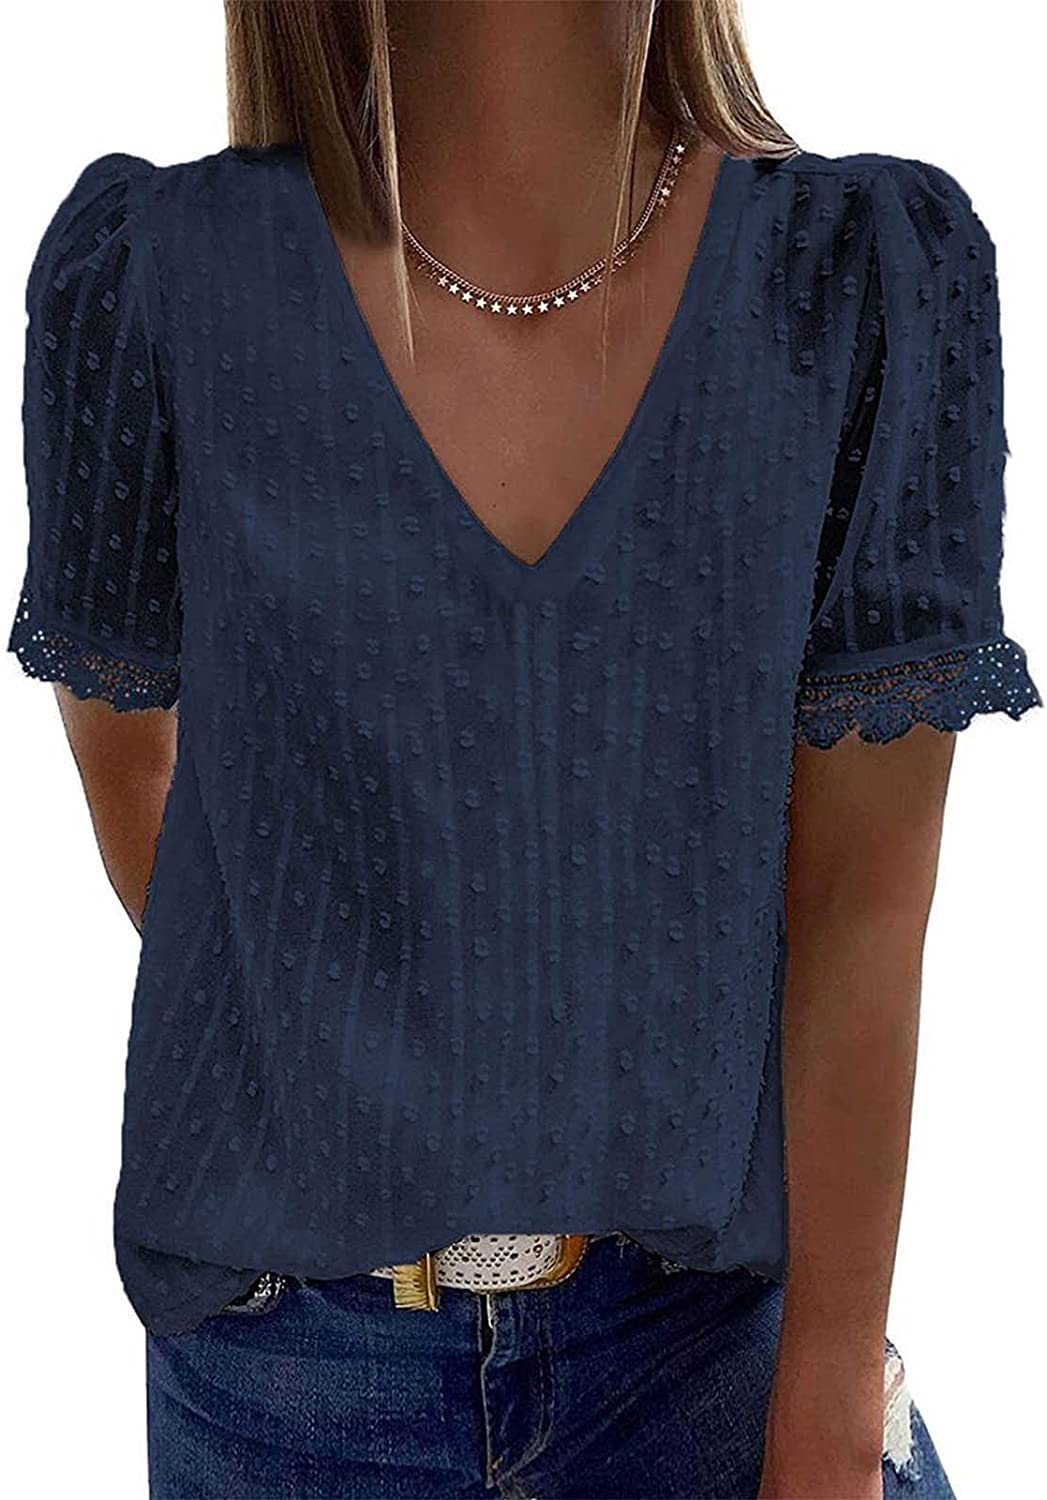 Womens Tops, Women'S Lace Blouses V Neck Short Sleeve Shirts Blouses Vintage Elegant Tunic Tops Casual Summer Tees